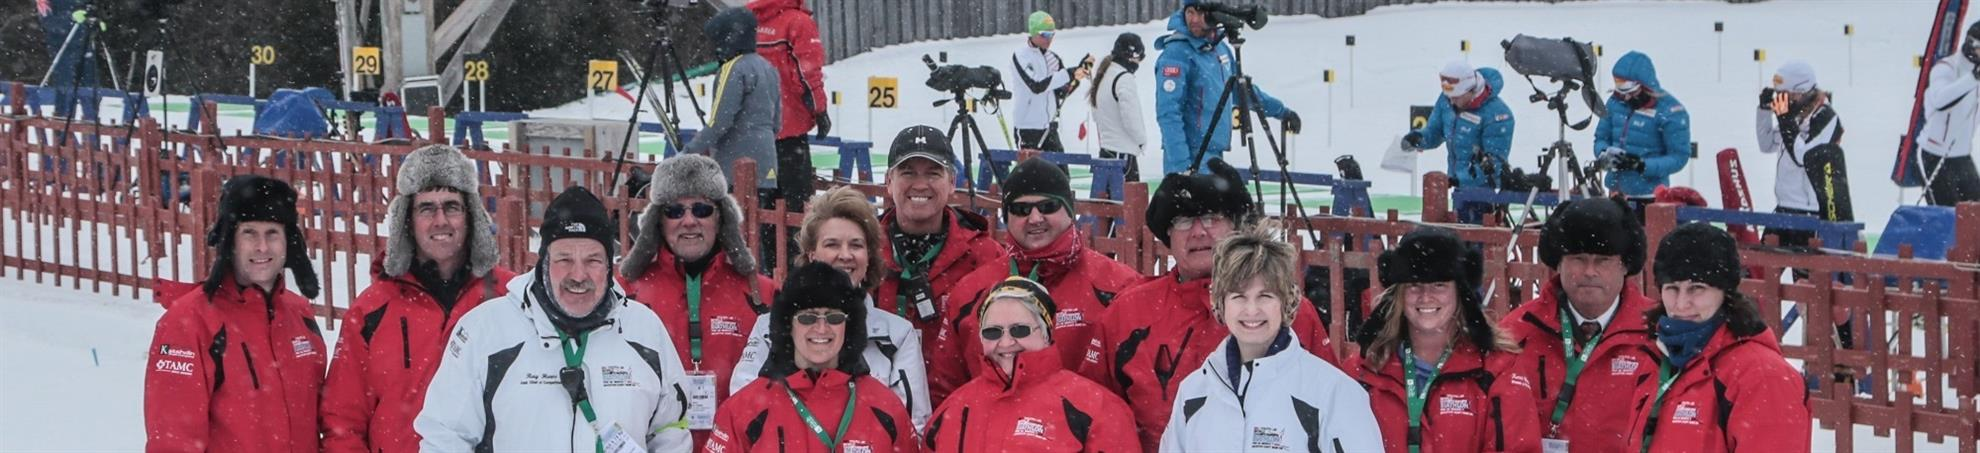 Volunteering during Biathlon